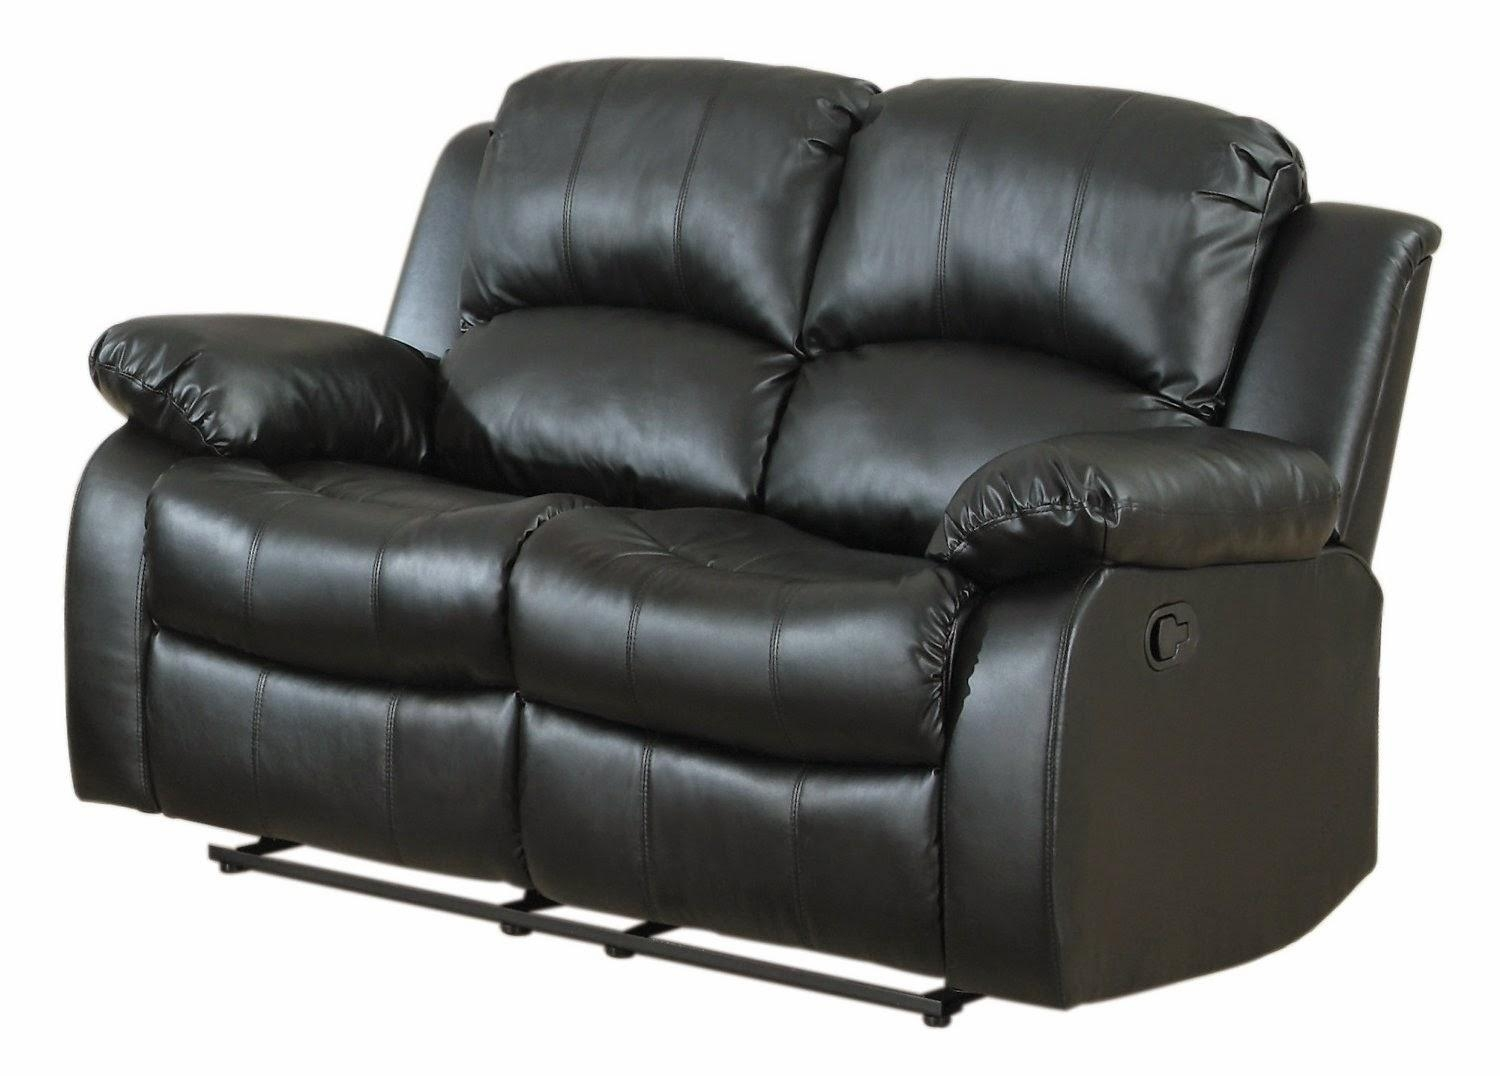 Sofas Center : Costco Leather Reclining Sofa Sofas And Pertaining To Berkline Reclining Sofas (Image 9 of 20)